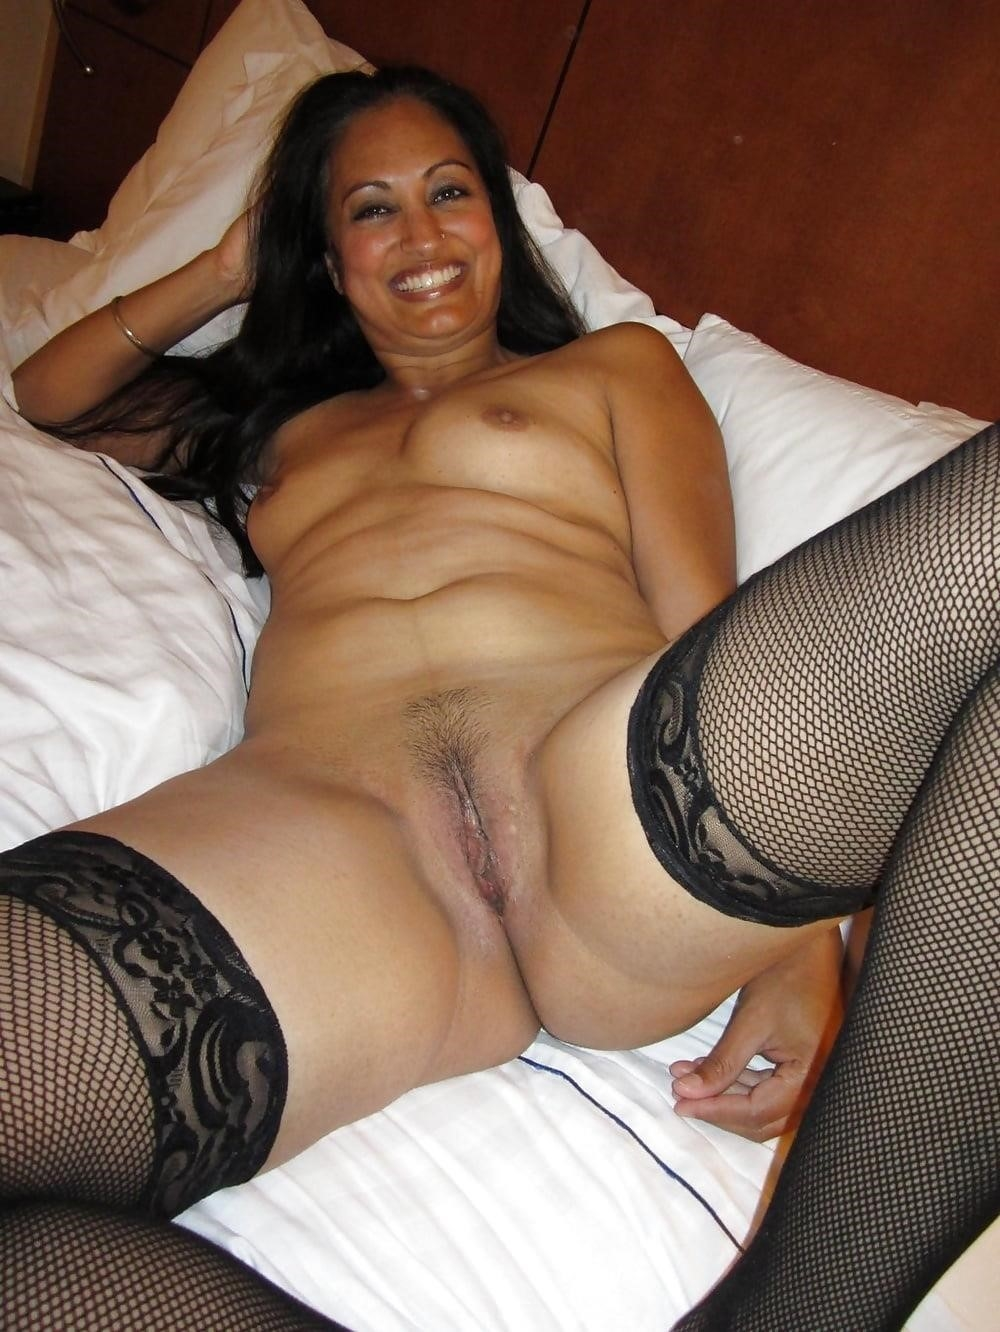 Girls out west orgy-7436